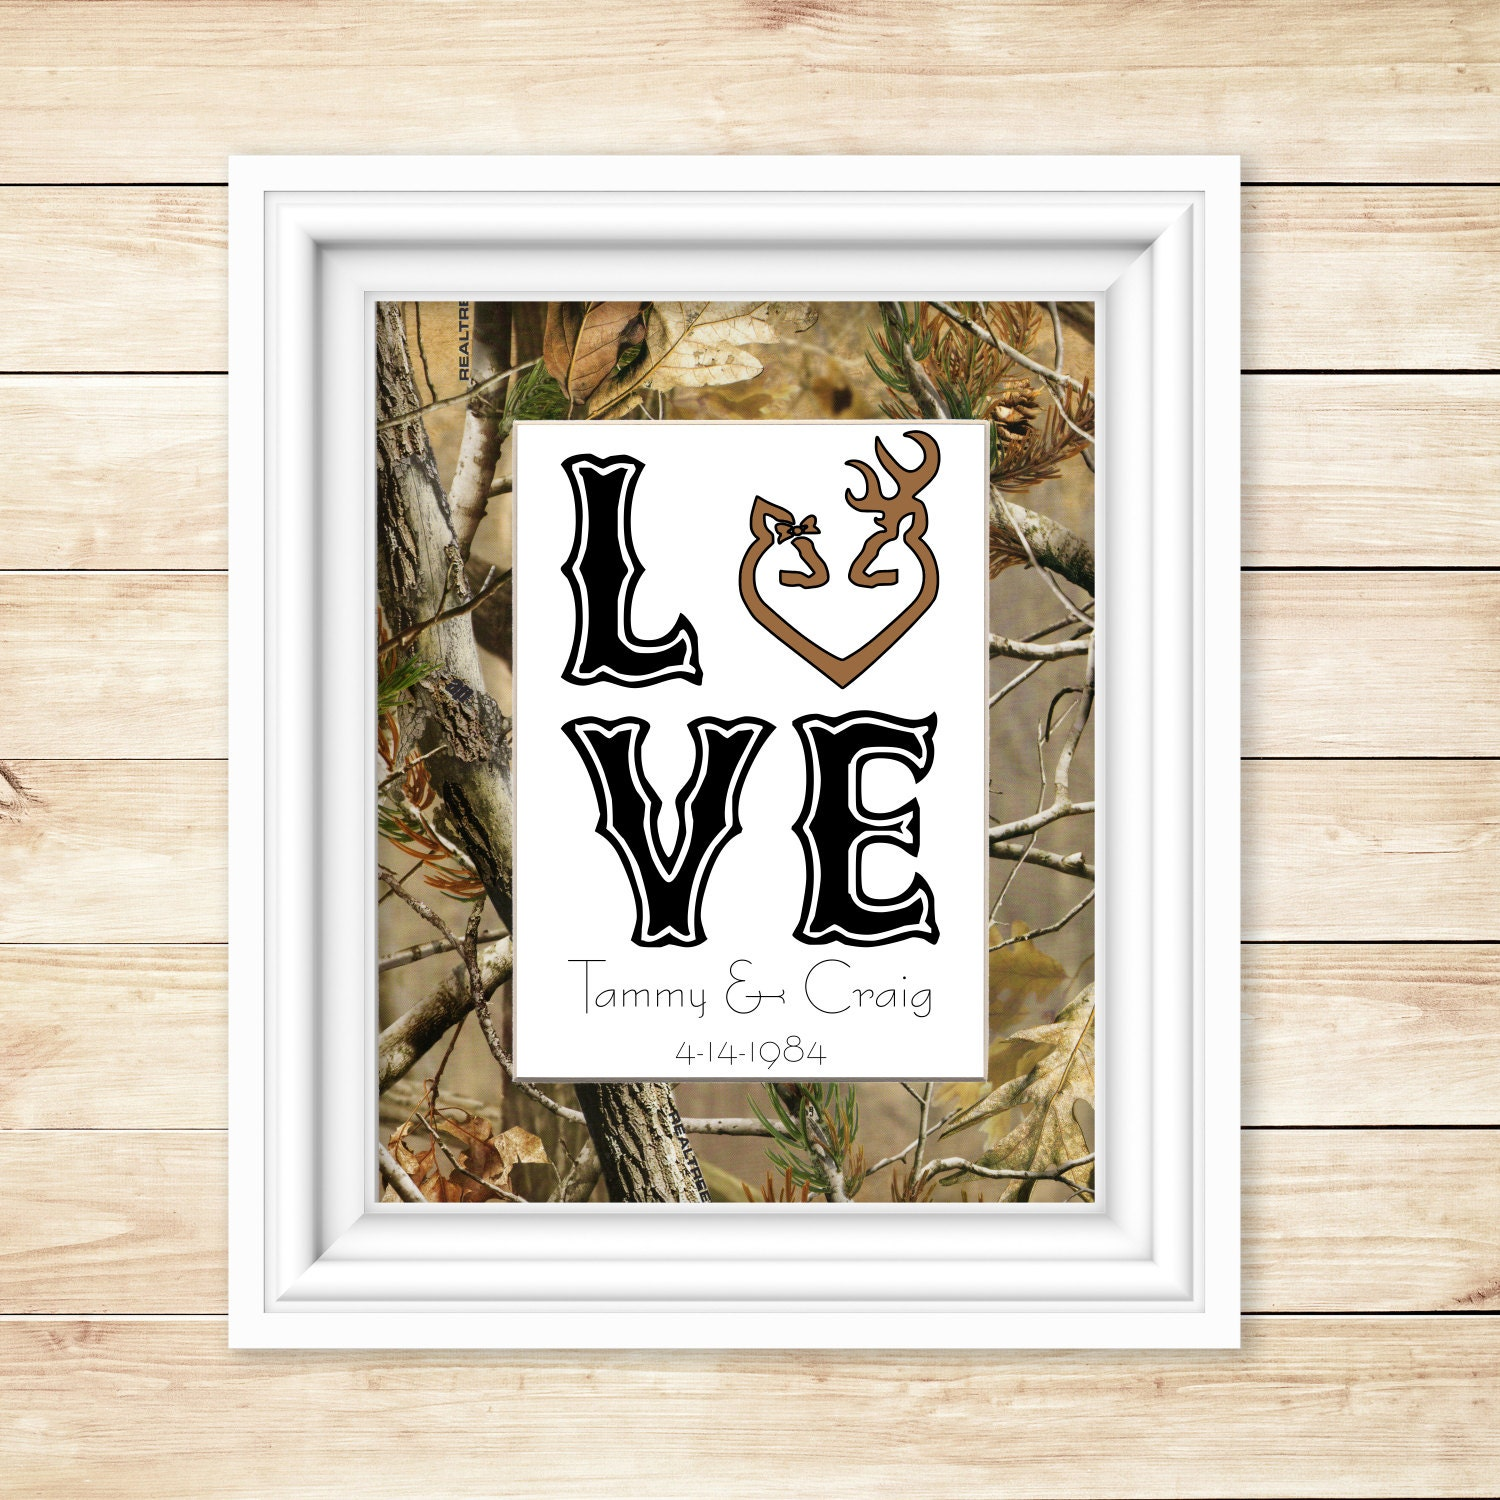 Hunting Wedding Decor Hunting Decor For The Home Camo Shower Gift Camo Love